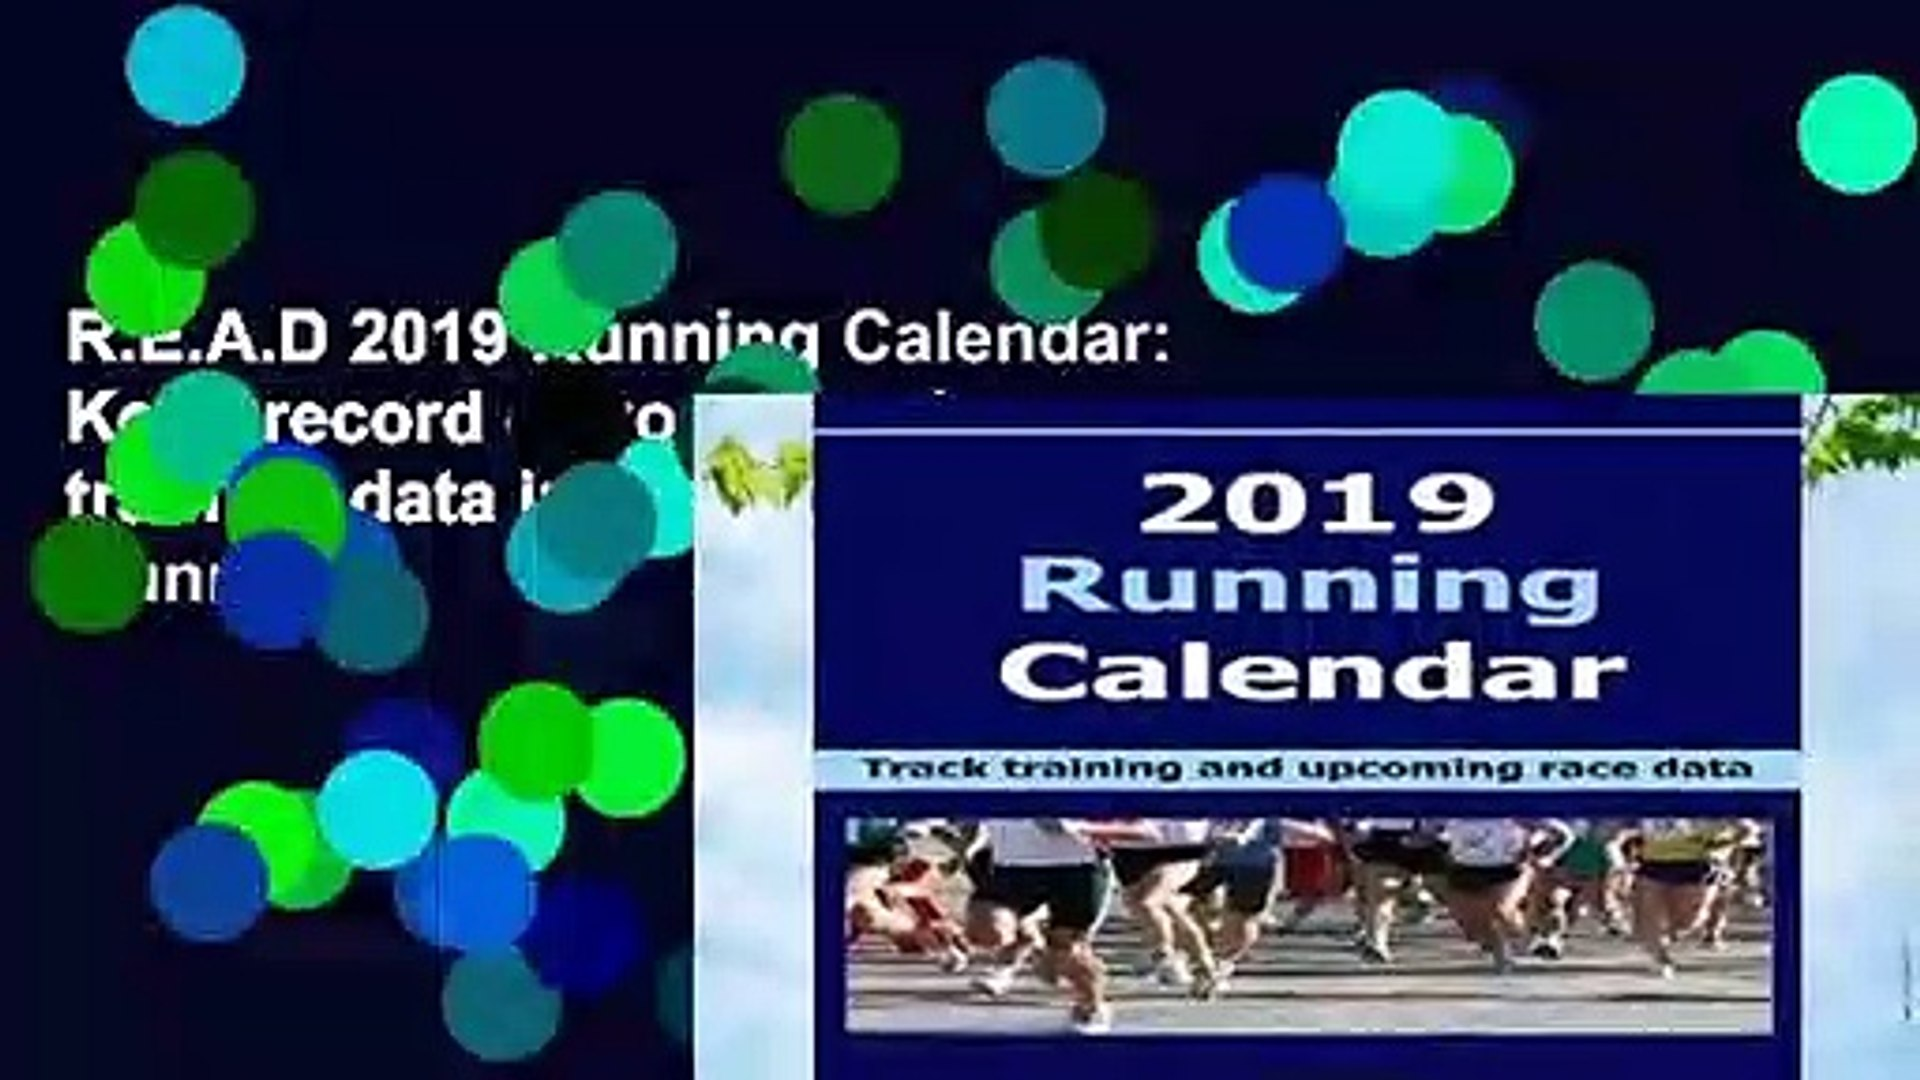 R.E.A.D 2019 Running Calendar: Keep record of your running training data in the 2019 Running